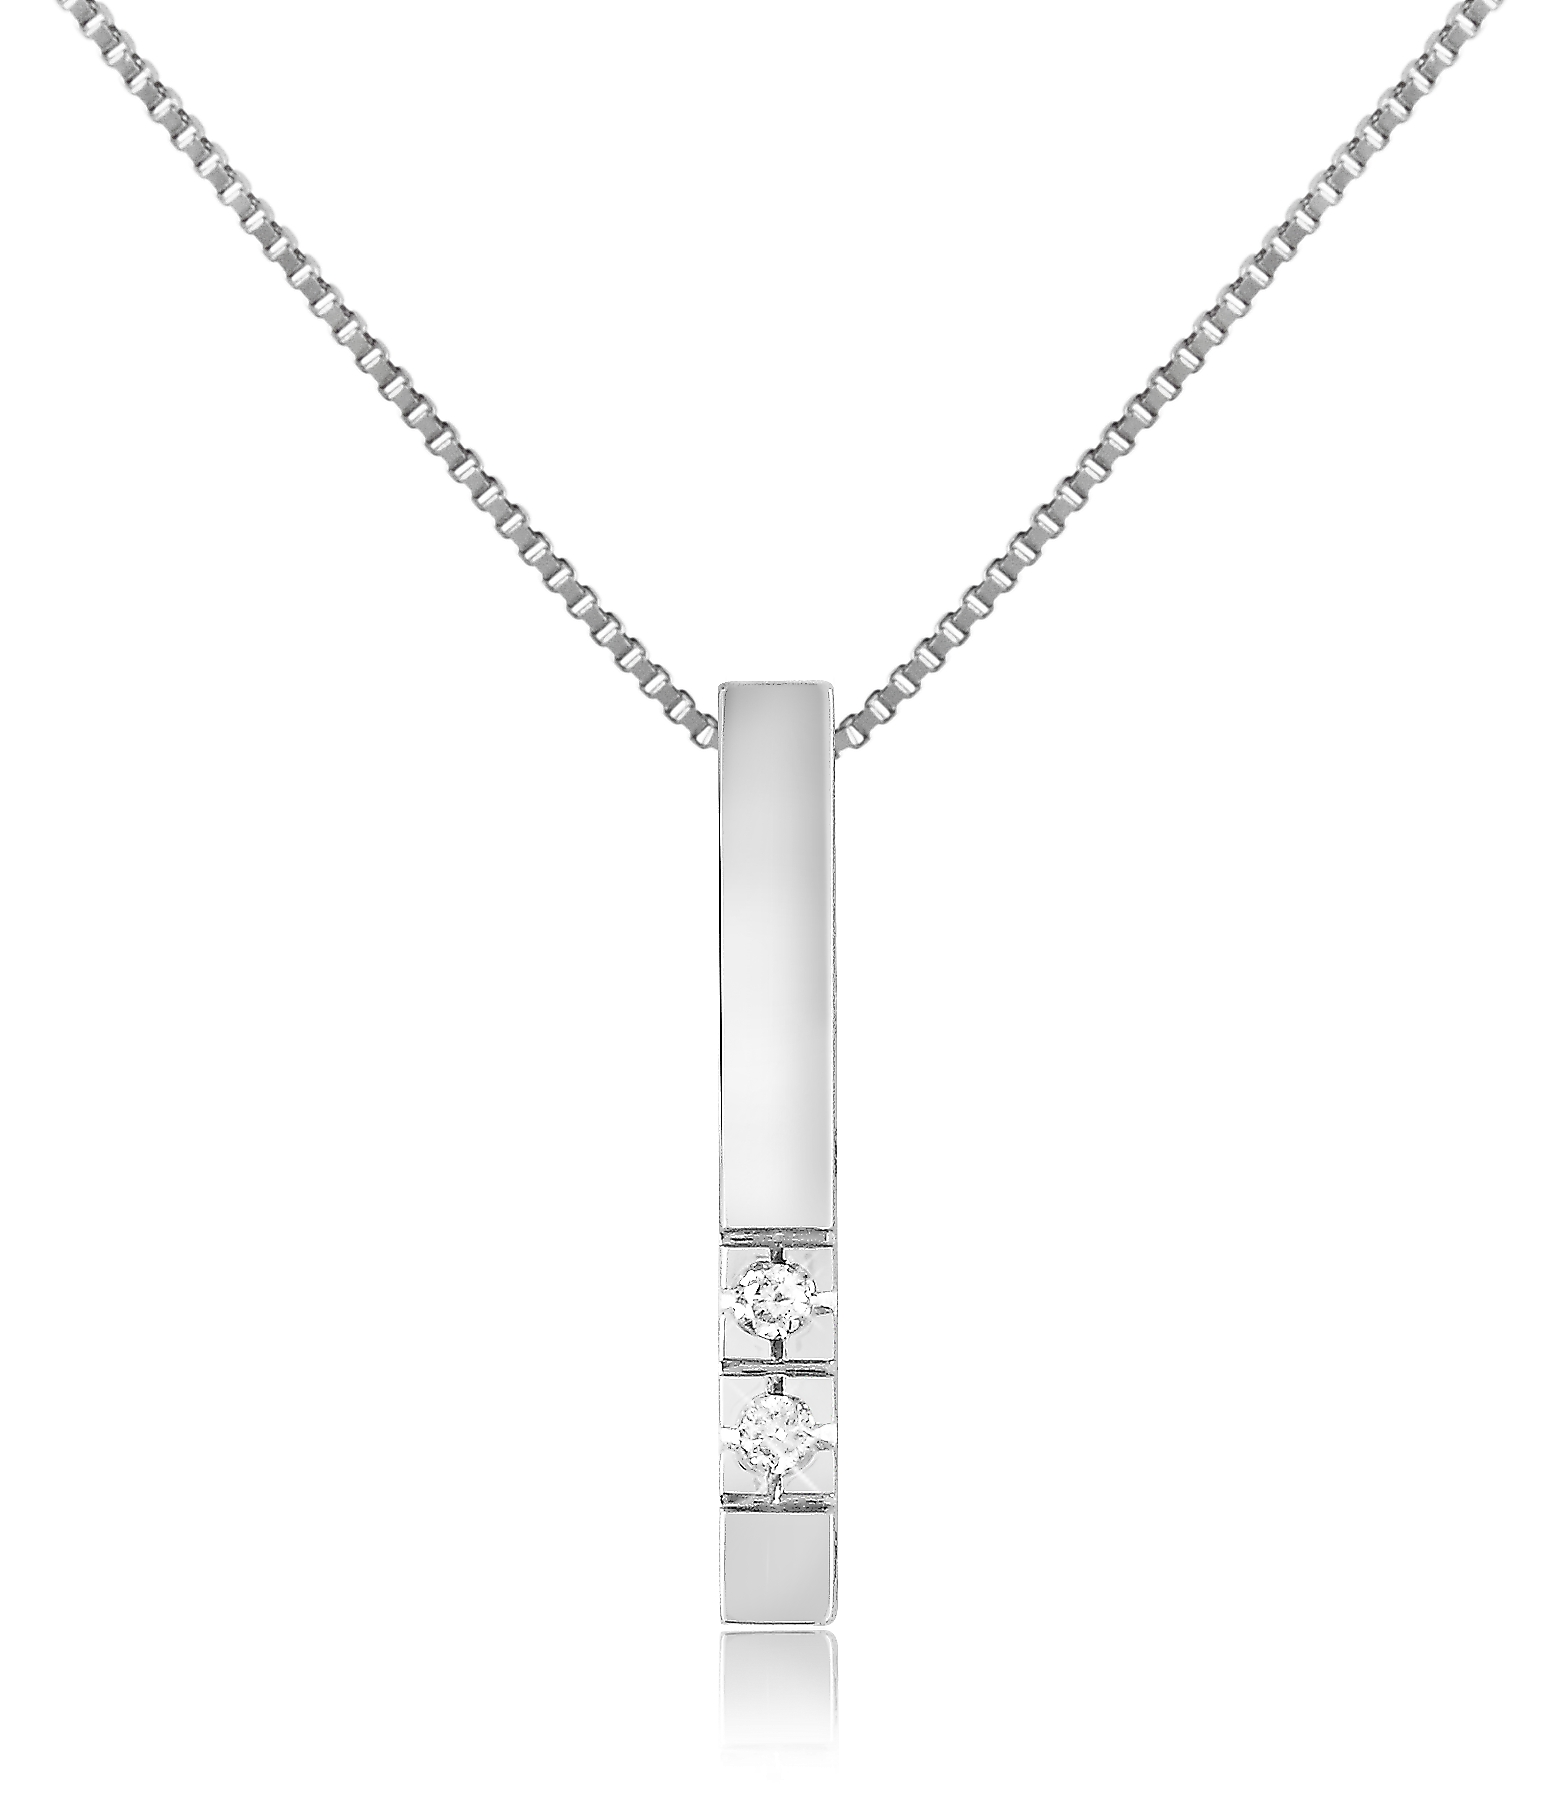 0.02 ct Diamond Bar Pendant Necklace